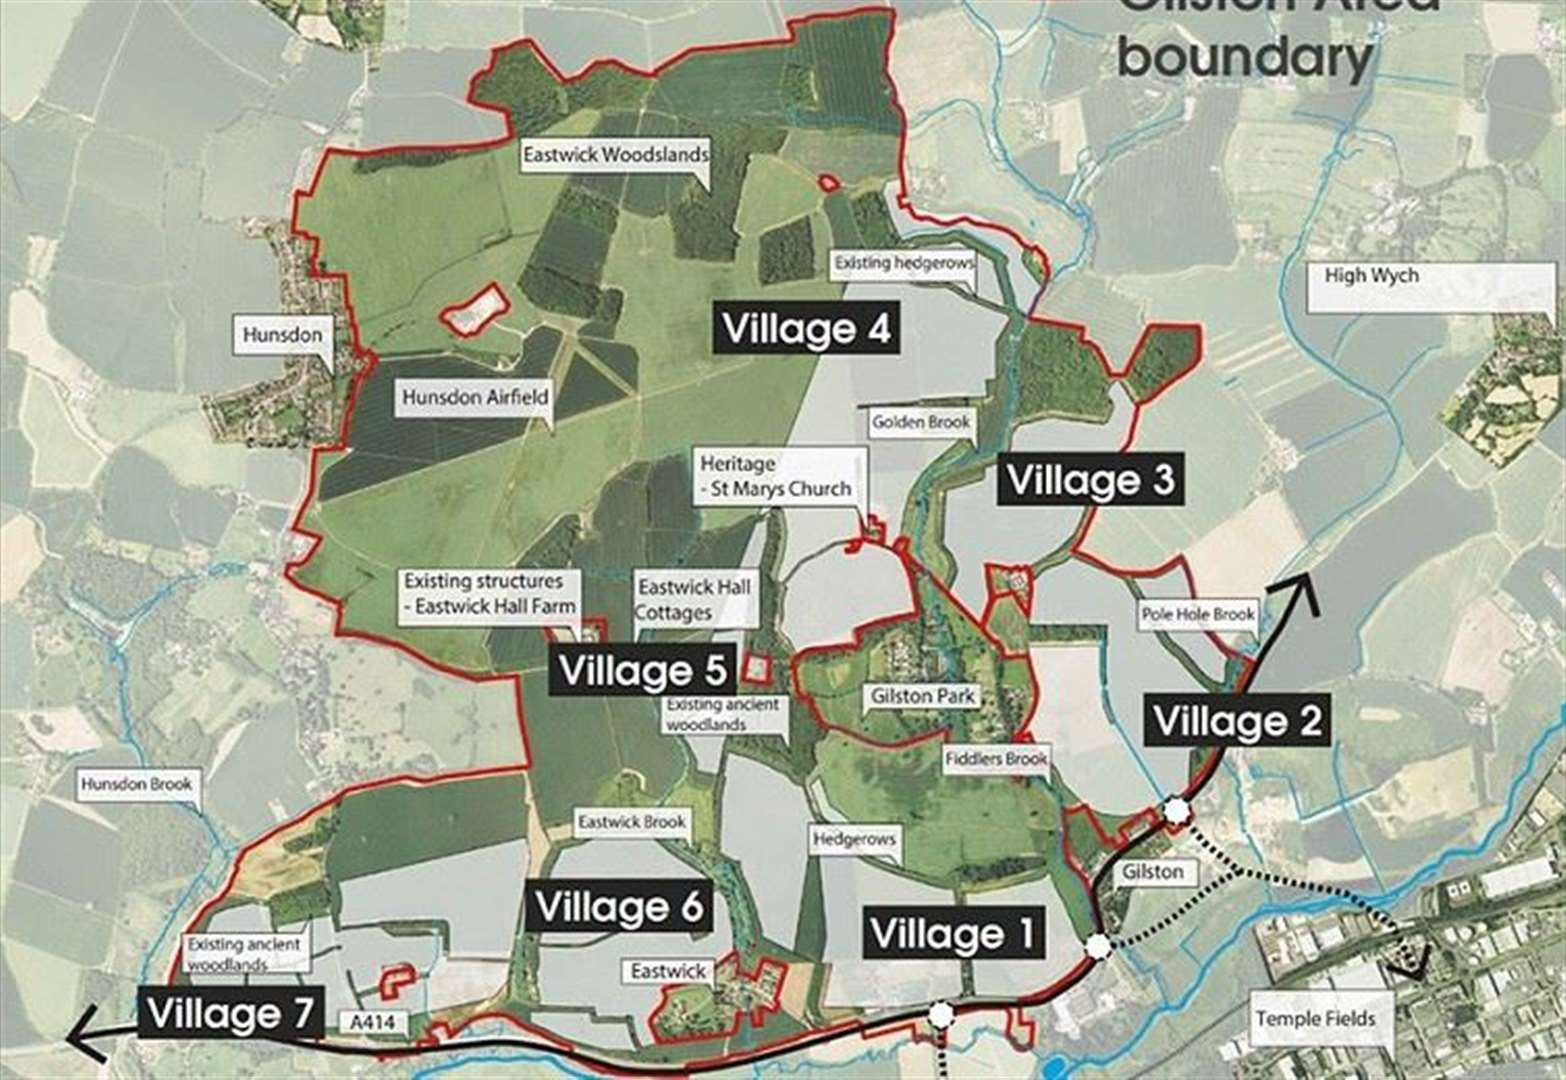 East Herts ponders plans for 10,000 new homes on border with Harlow